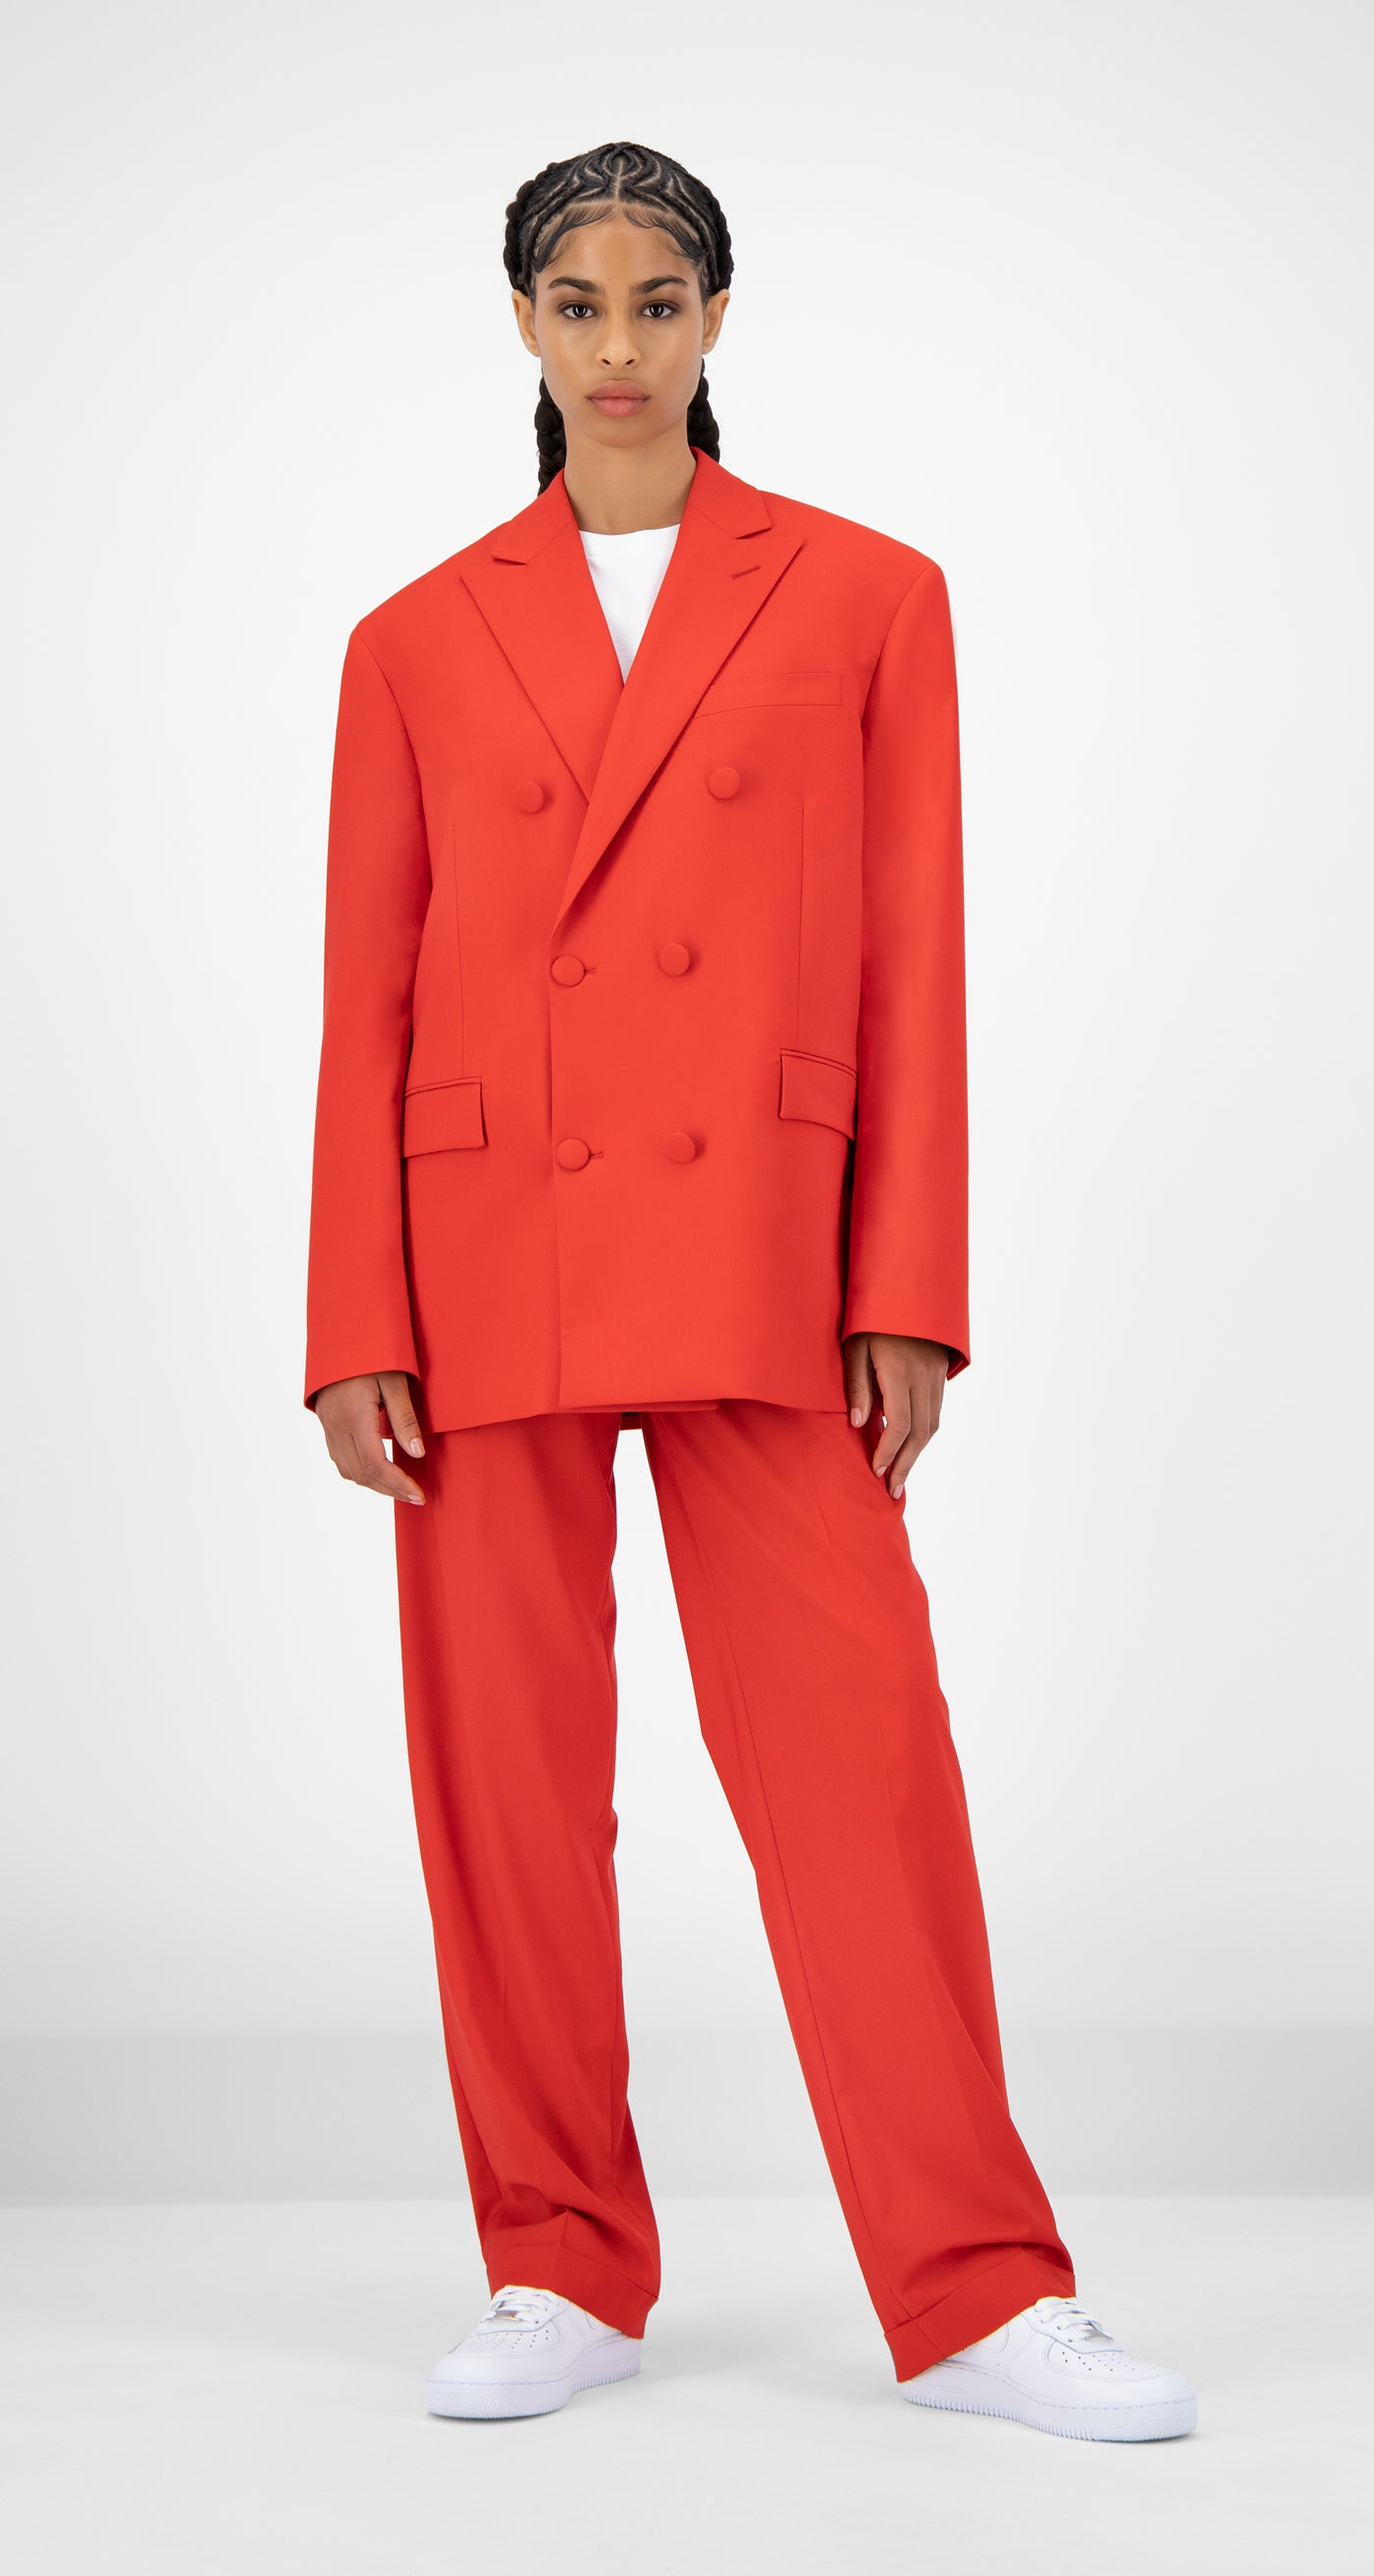 Daily Paper - Red Jecker Blazer - Women